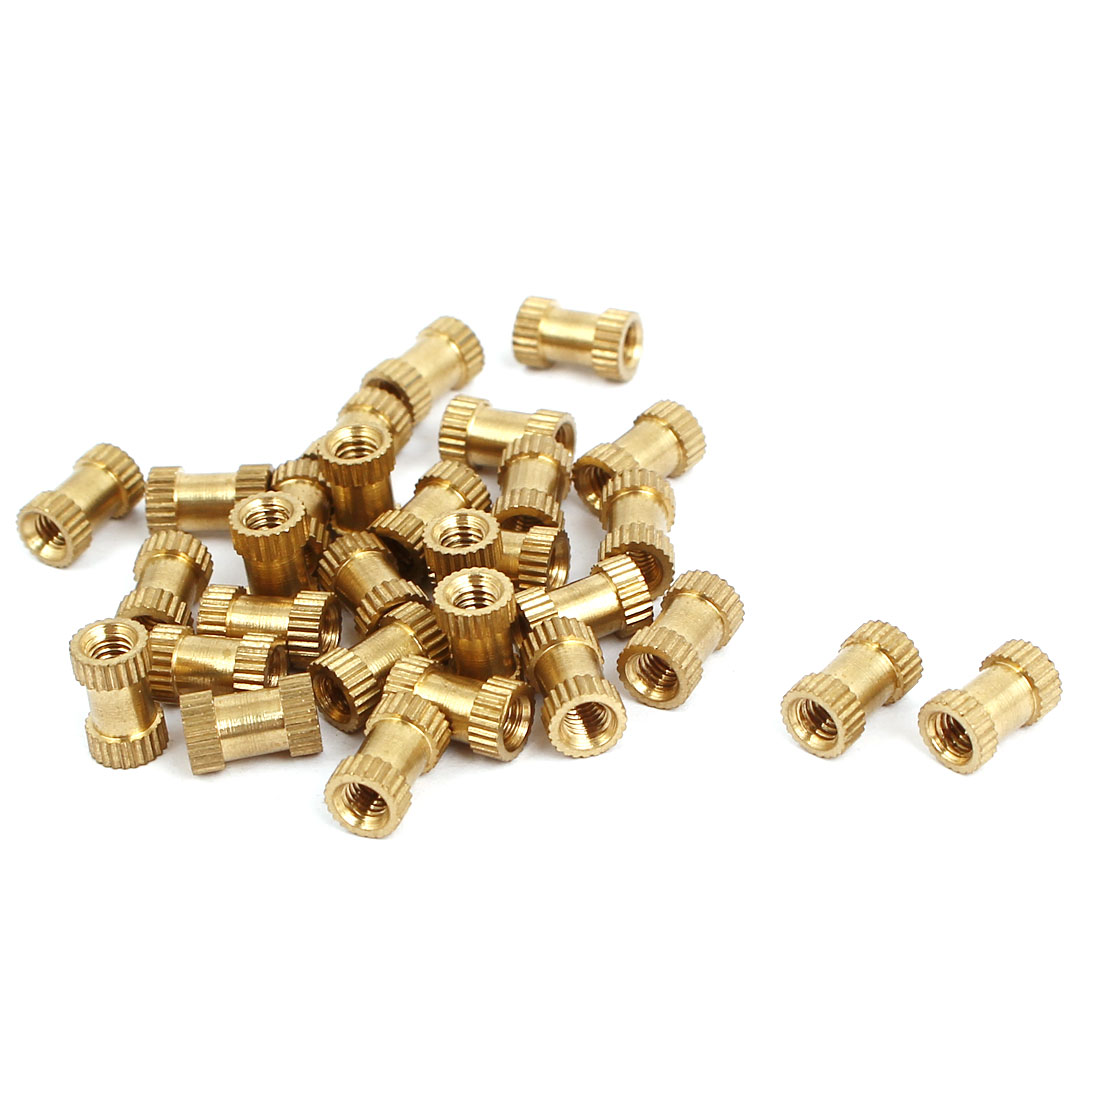 M3x8mmx5mm Female Threaded Brass Knurled Insert Embedded Nuts Gold Tone 30pcs